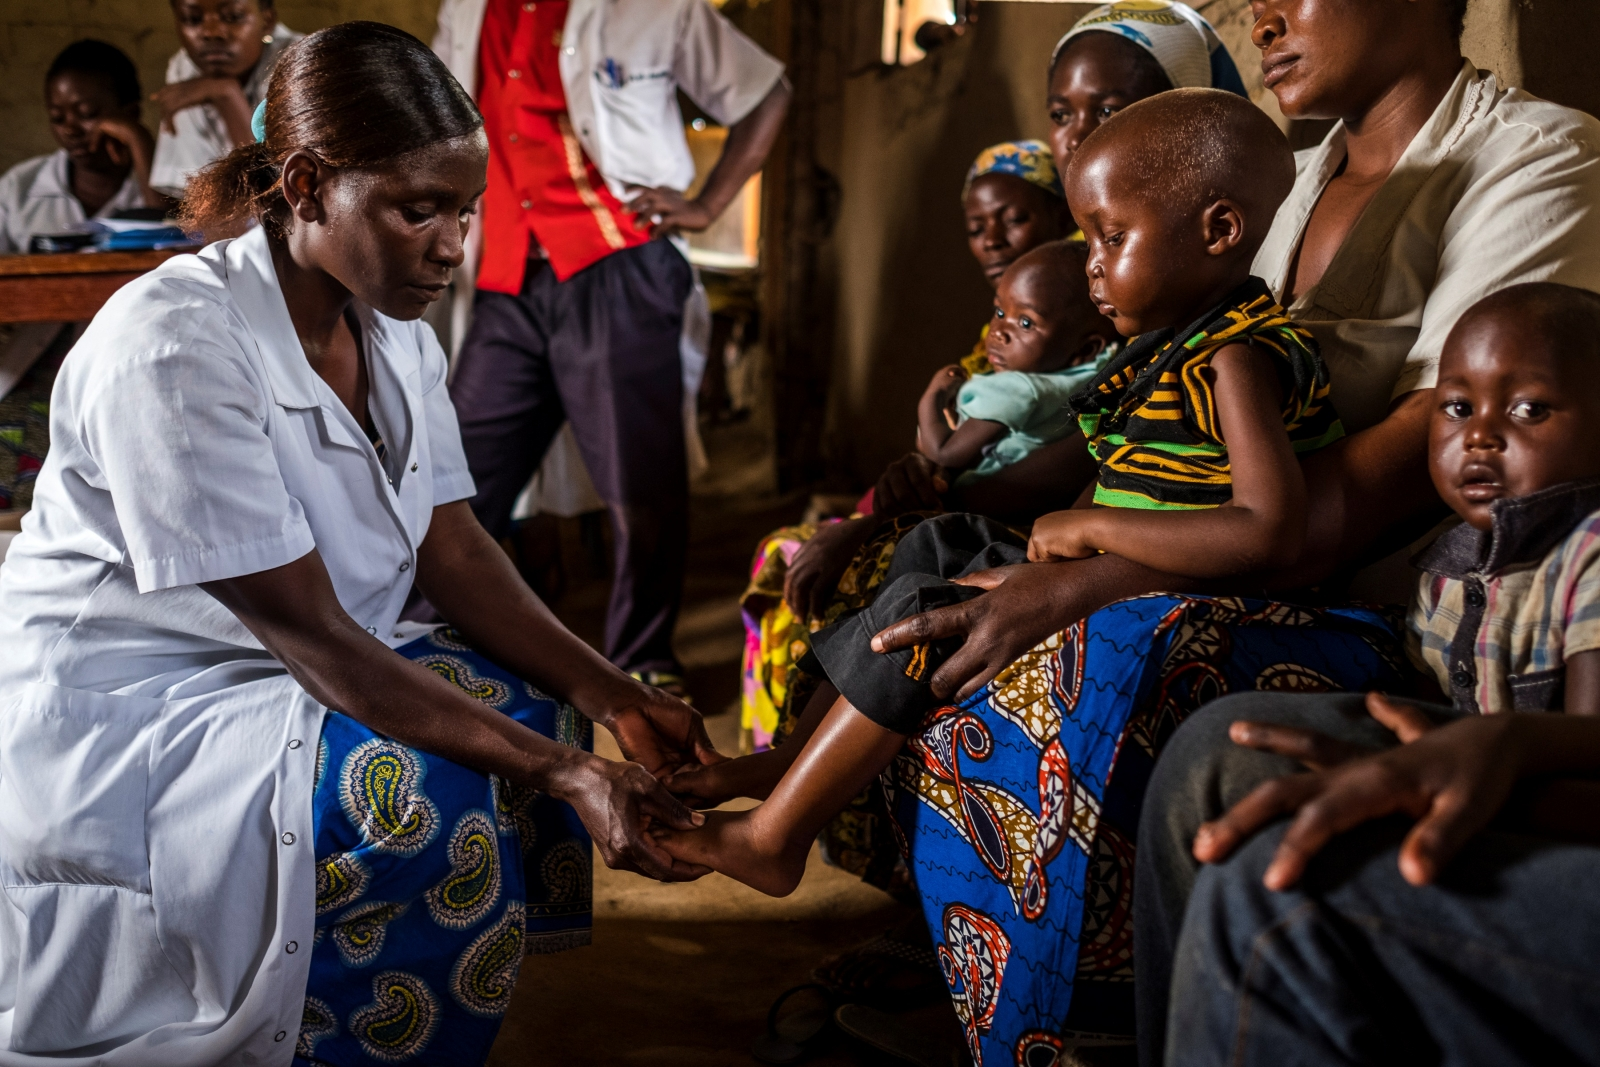 Discover #YellowSunday, the campaign to support, train and empower women in DRC